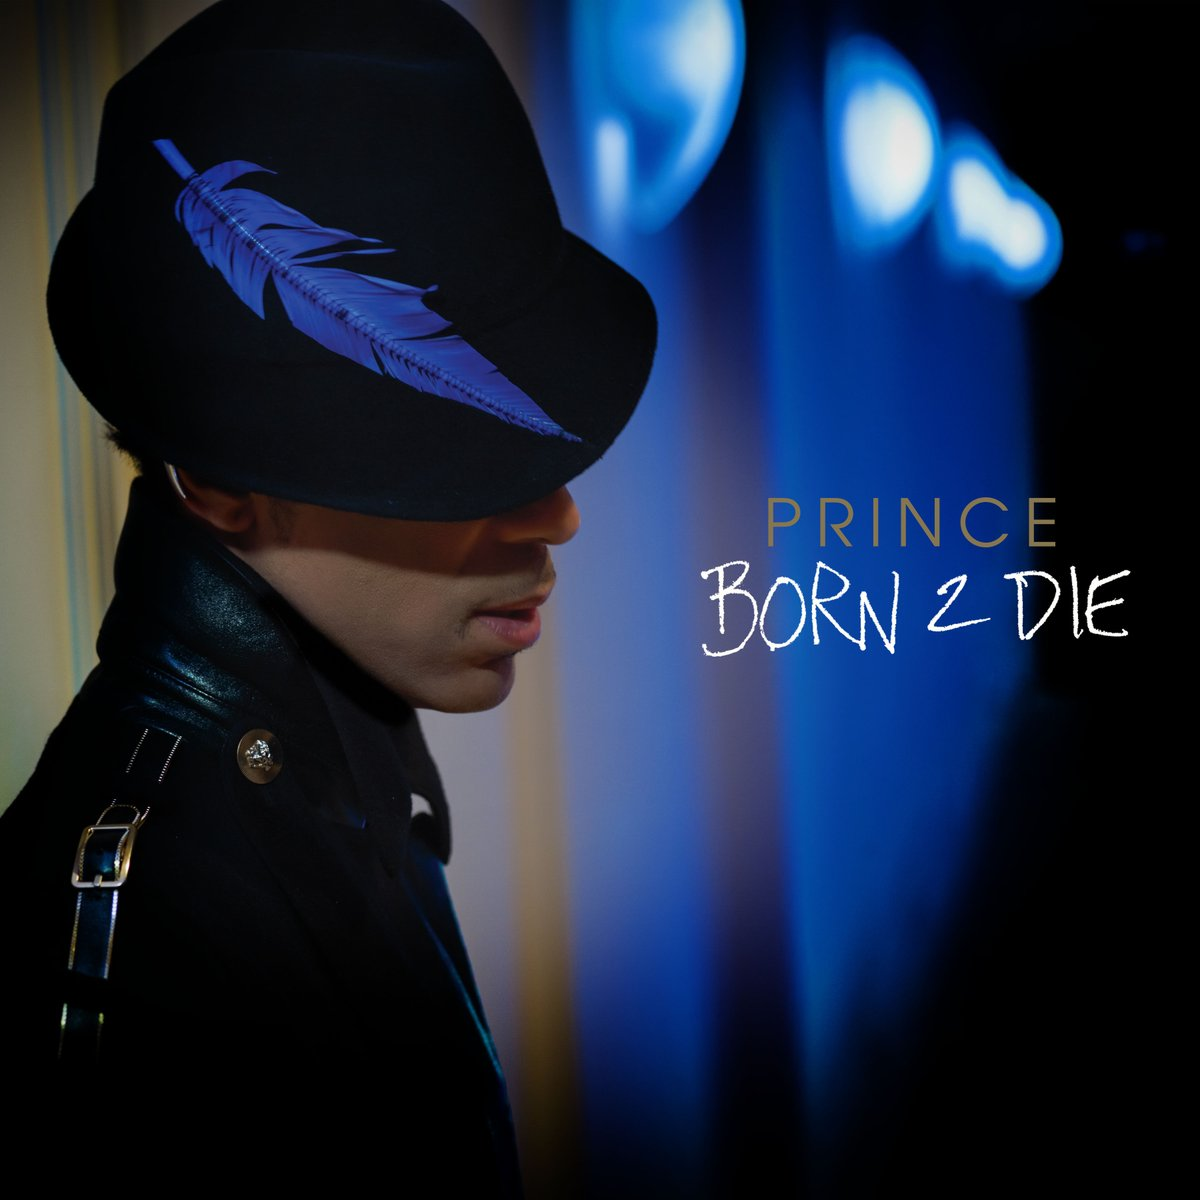 """The #Welcome2America track """"Born 2 Die"""" will be exclusively premiered by @BBC6Music tomorrow morning. Tune in at 8 a.m. BST on Thursday to hear Morris Hayes and host Gemma Cairney cue up the track for the first time. Photo by Randee St. Nicholas. #prince https://t.co/WMuXtg8qby https://t.co/tlzicmdYQS"""